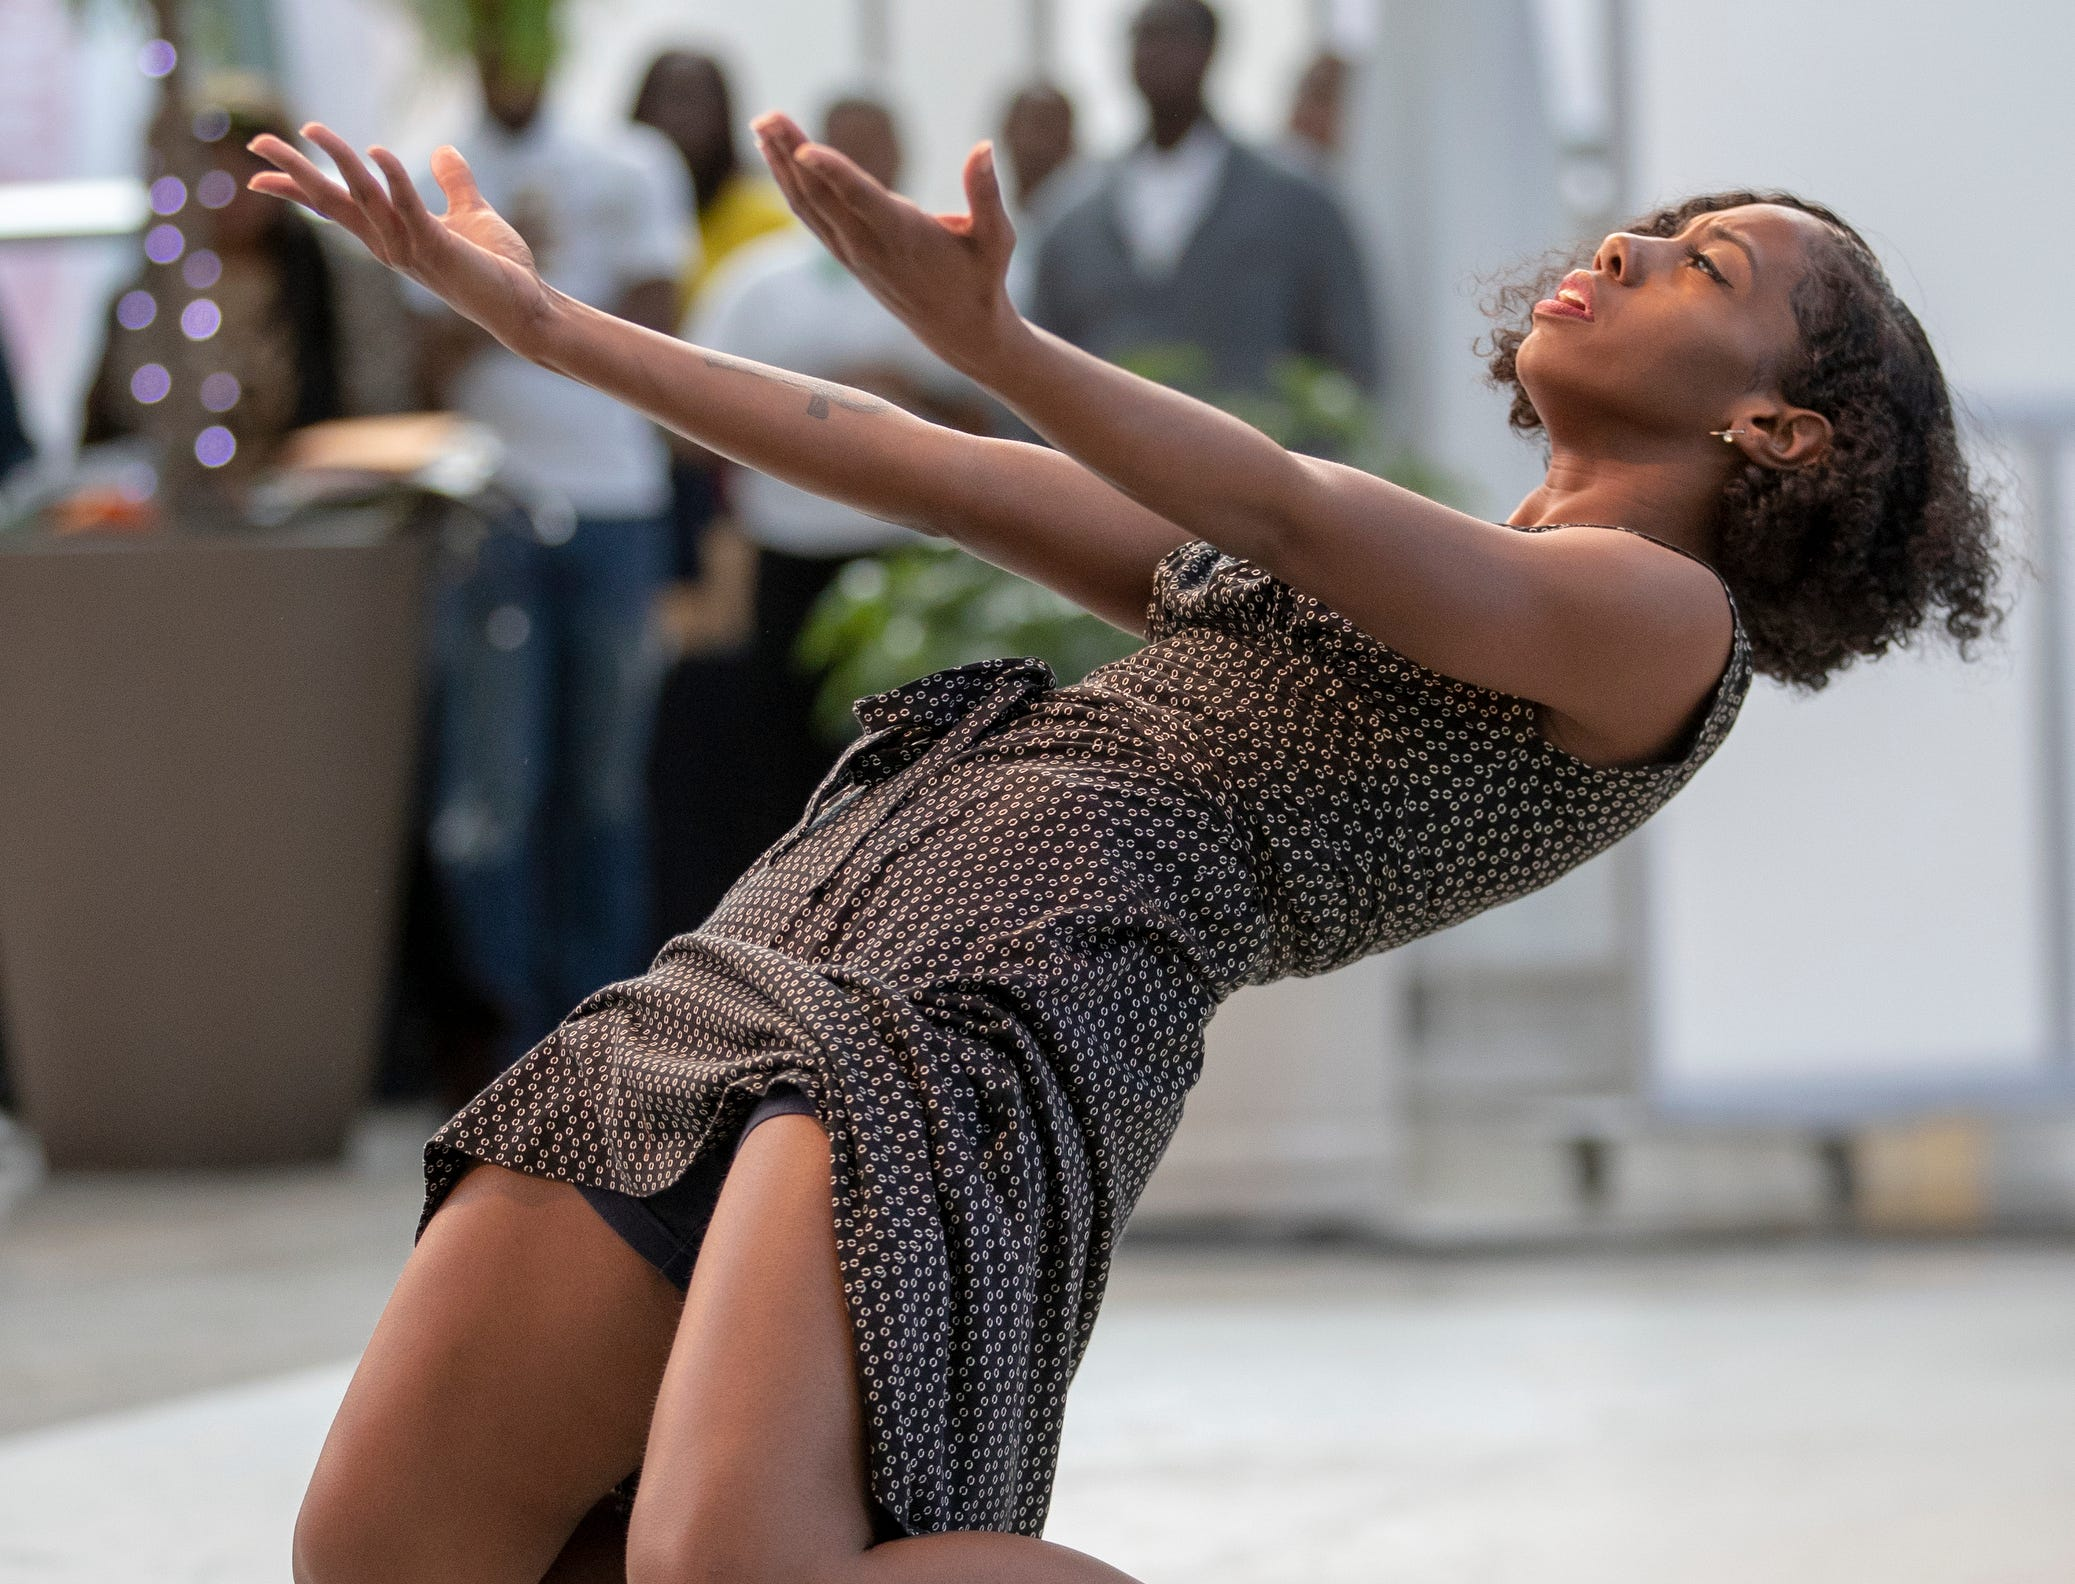 Lalah Hazelwood, featured dancer, performs at the 2019 Art and Soul kickoff celebration at the Indianapolis Arts Garden, Indianapolis, Saturday, Feb. 2, 2019.